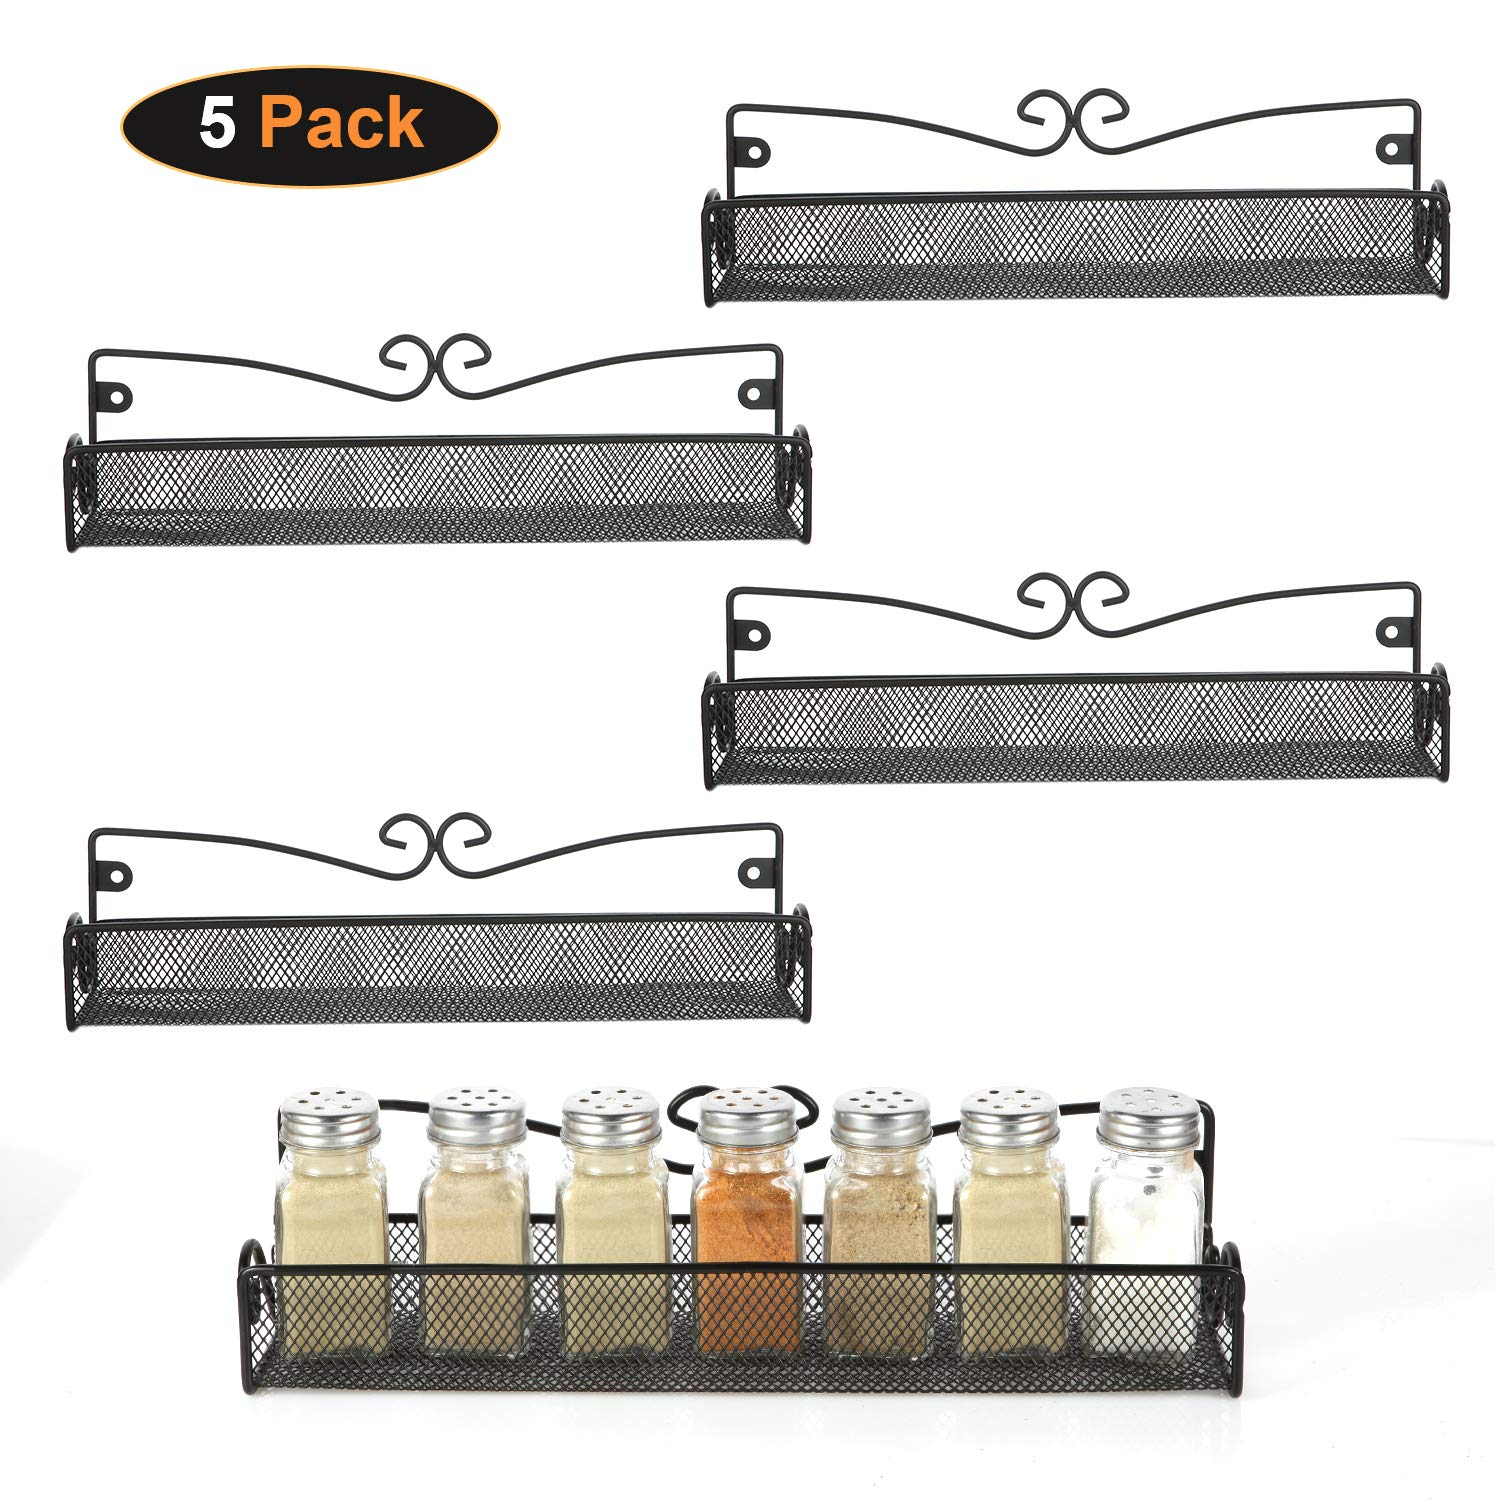 5 Pack Wall Mount Spice Rack Organizer for Cabinet Door Pantry Hanging Spice Shelf Storage,Black by 6D